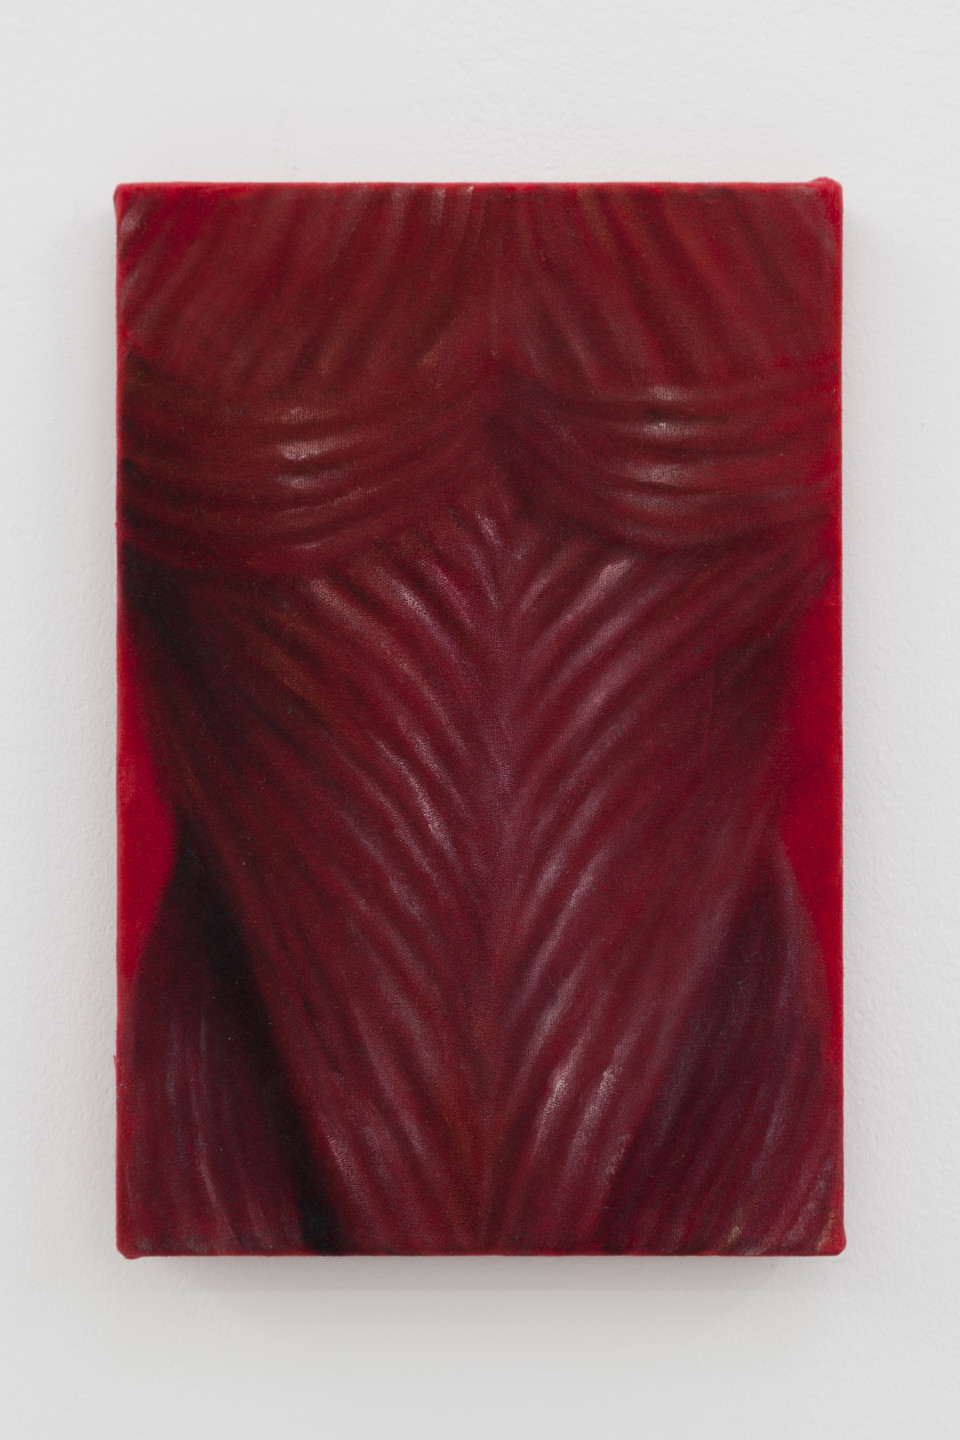 Issy Wood Fretting, Dracula, 2018 Oil on velvet 29.5 x 20 x 1.5 cm 11 5/8 x 7 7/8 x 5/8 in